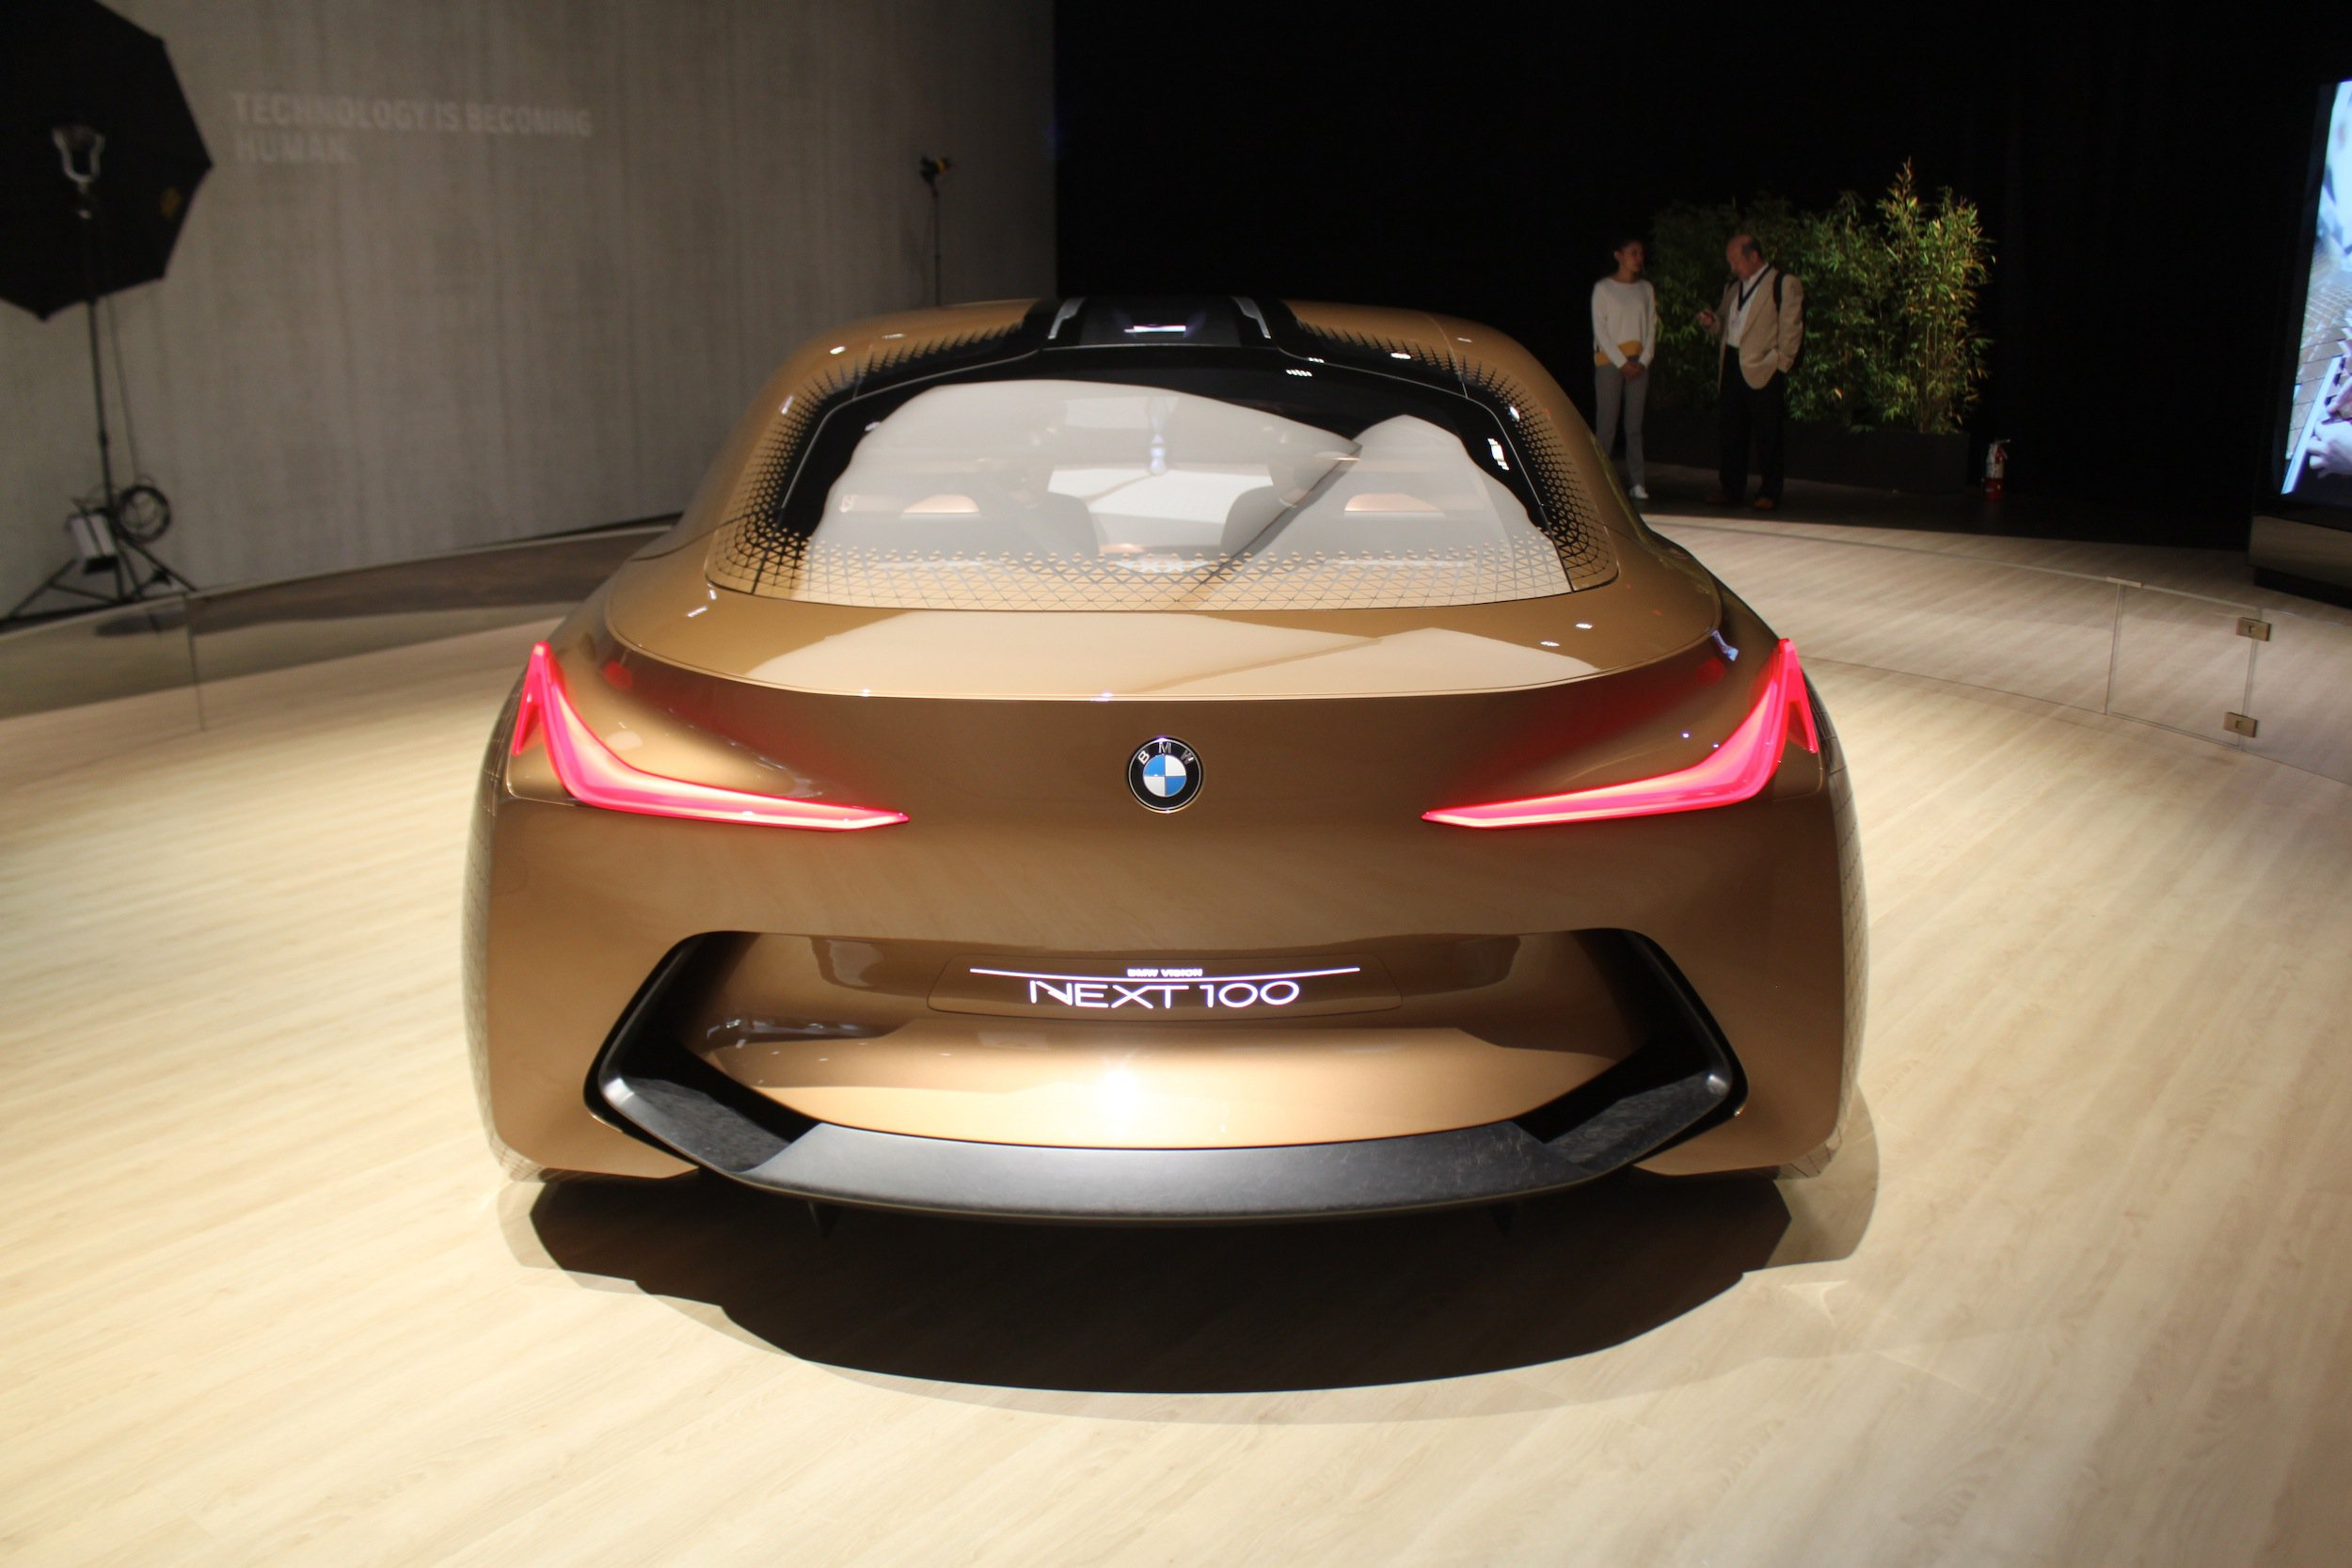 Gallery: See All Four BMW Vision Next 100 Concepts Up Close